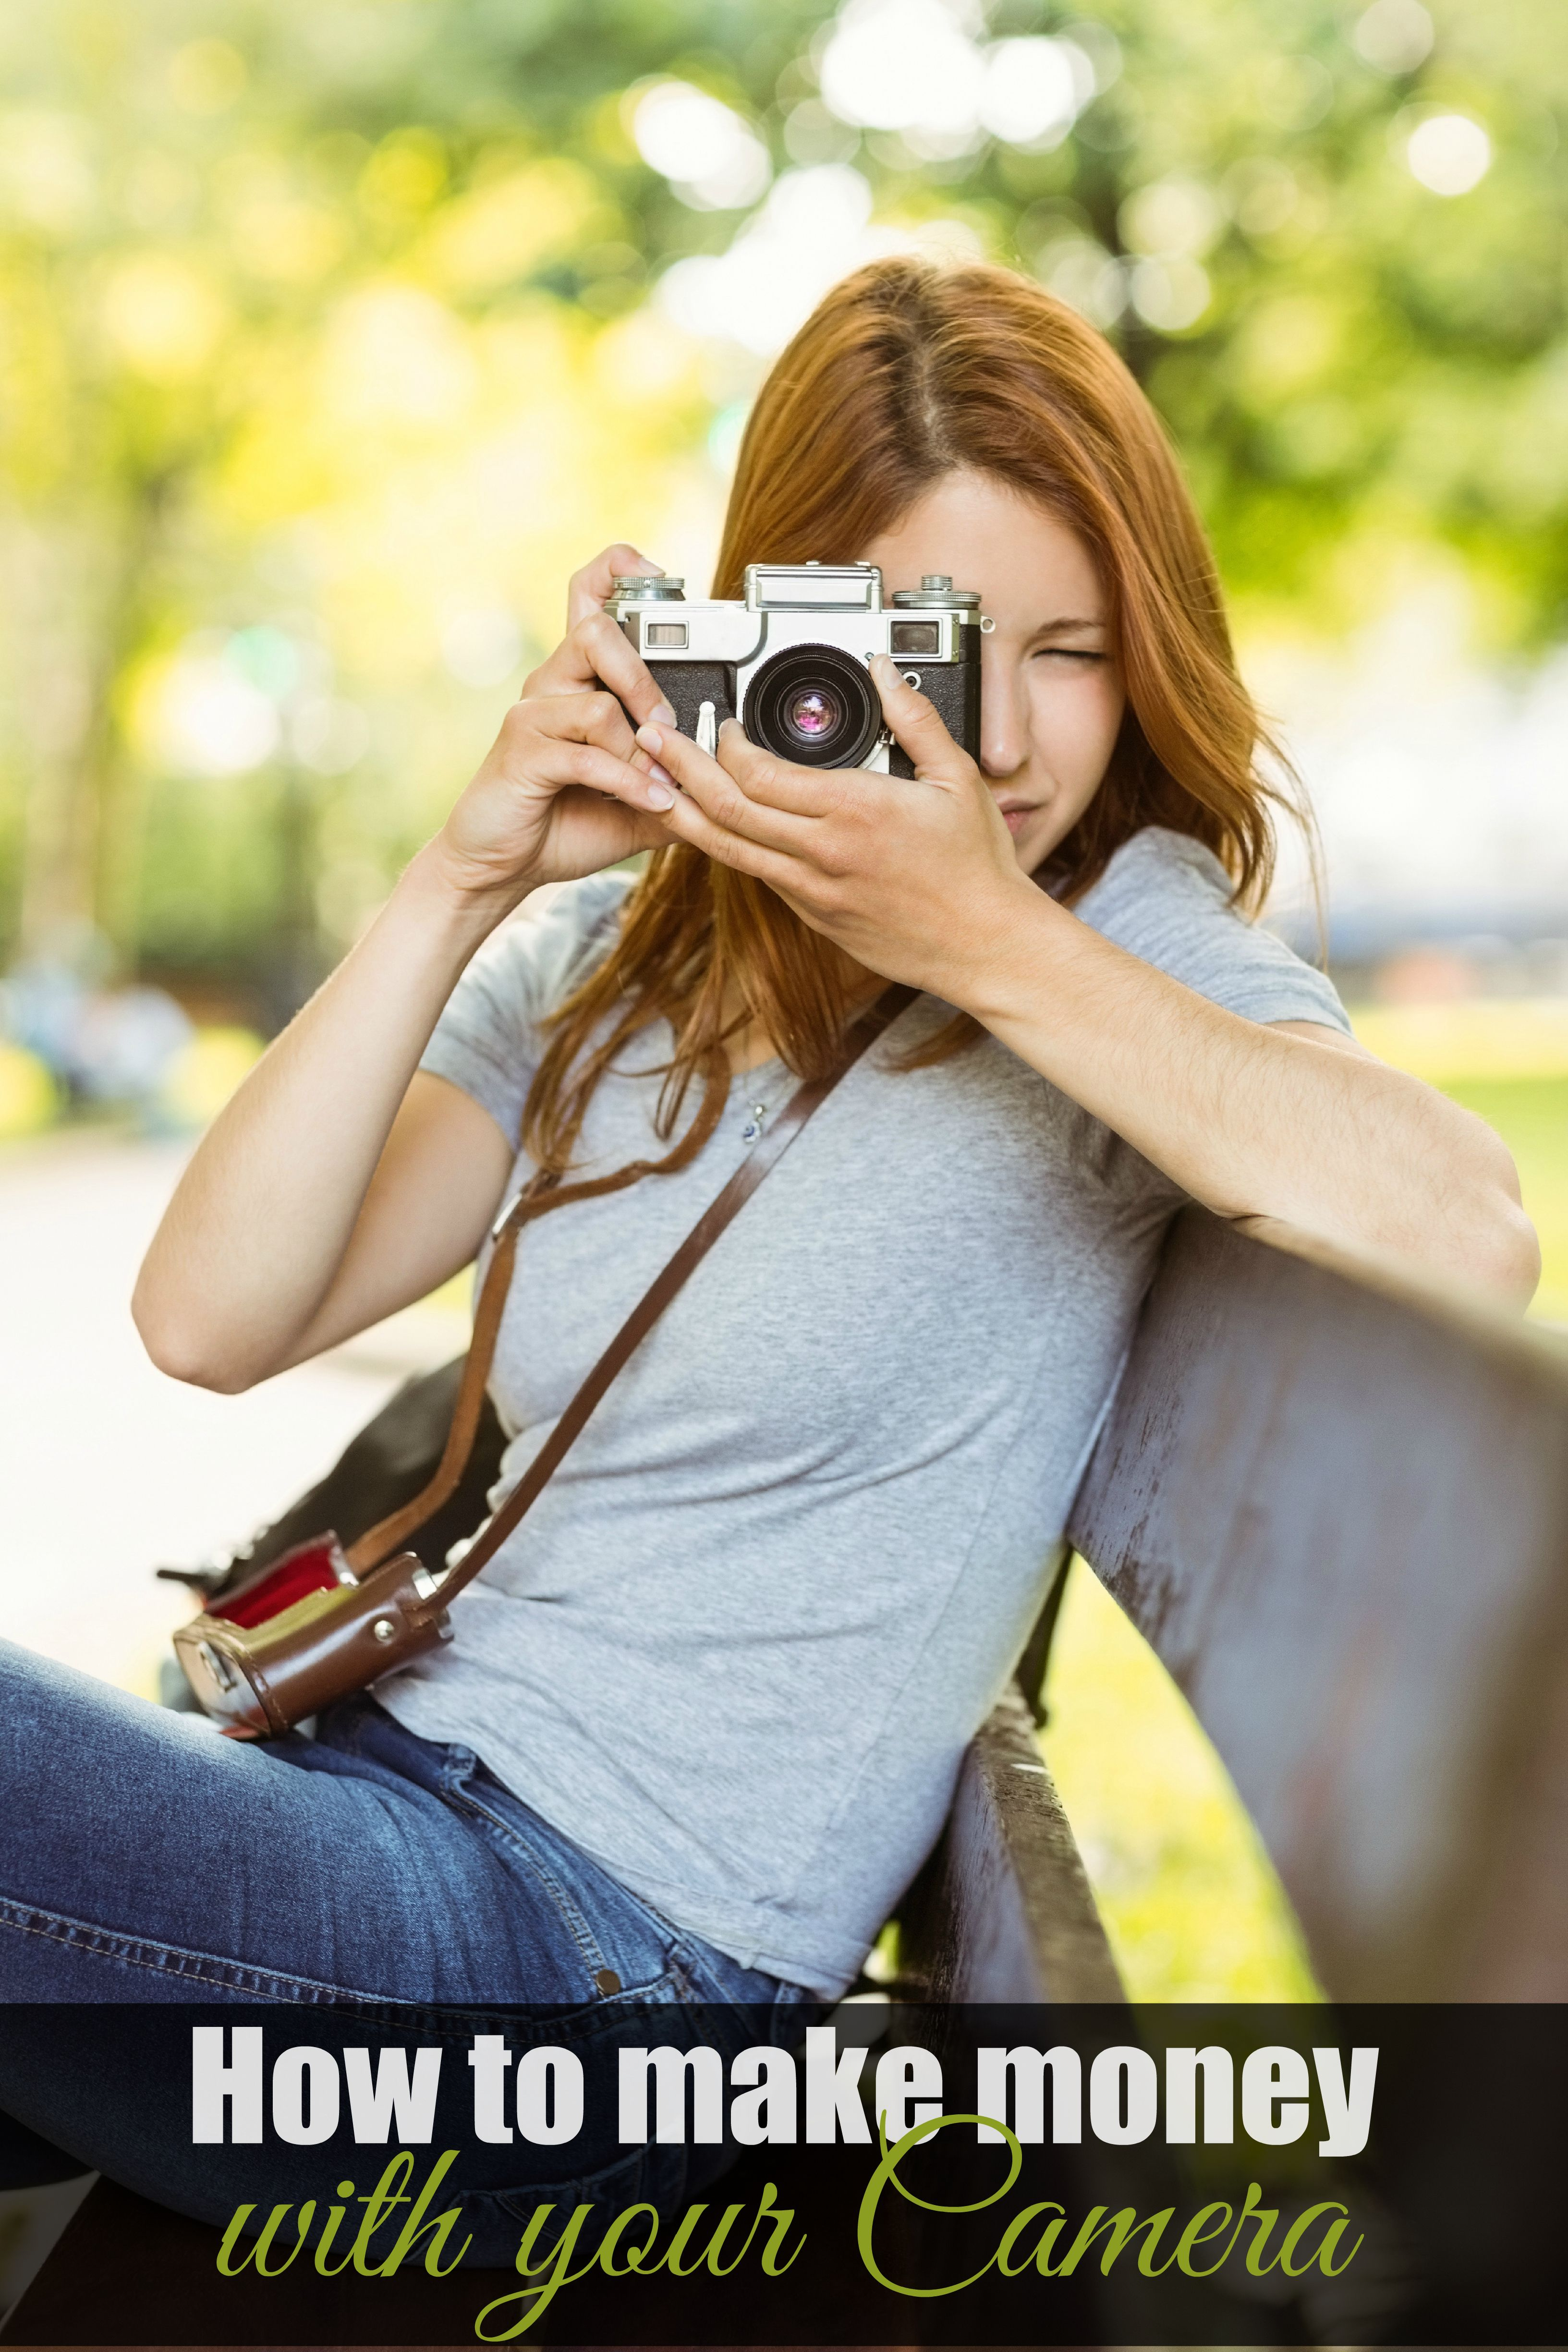 How to Make Money With Your Camera